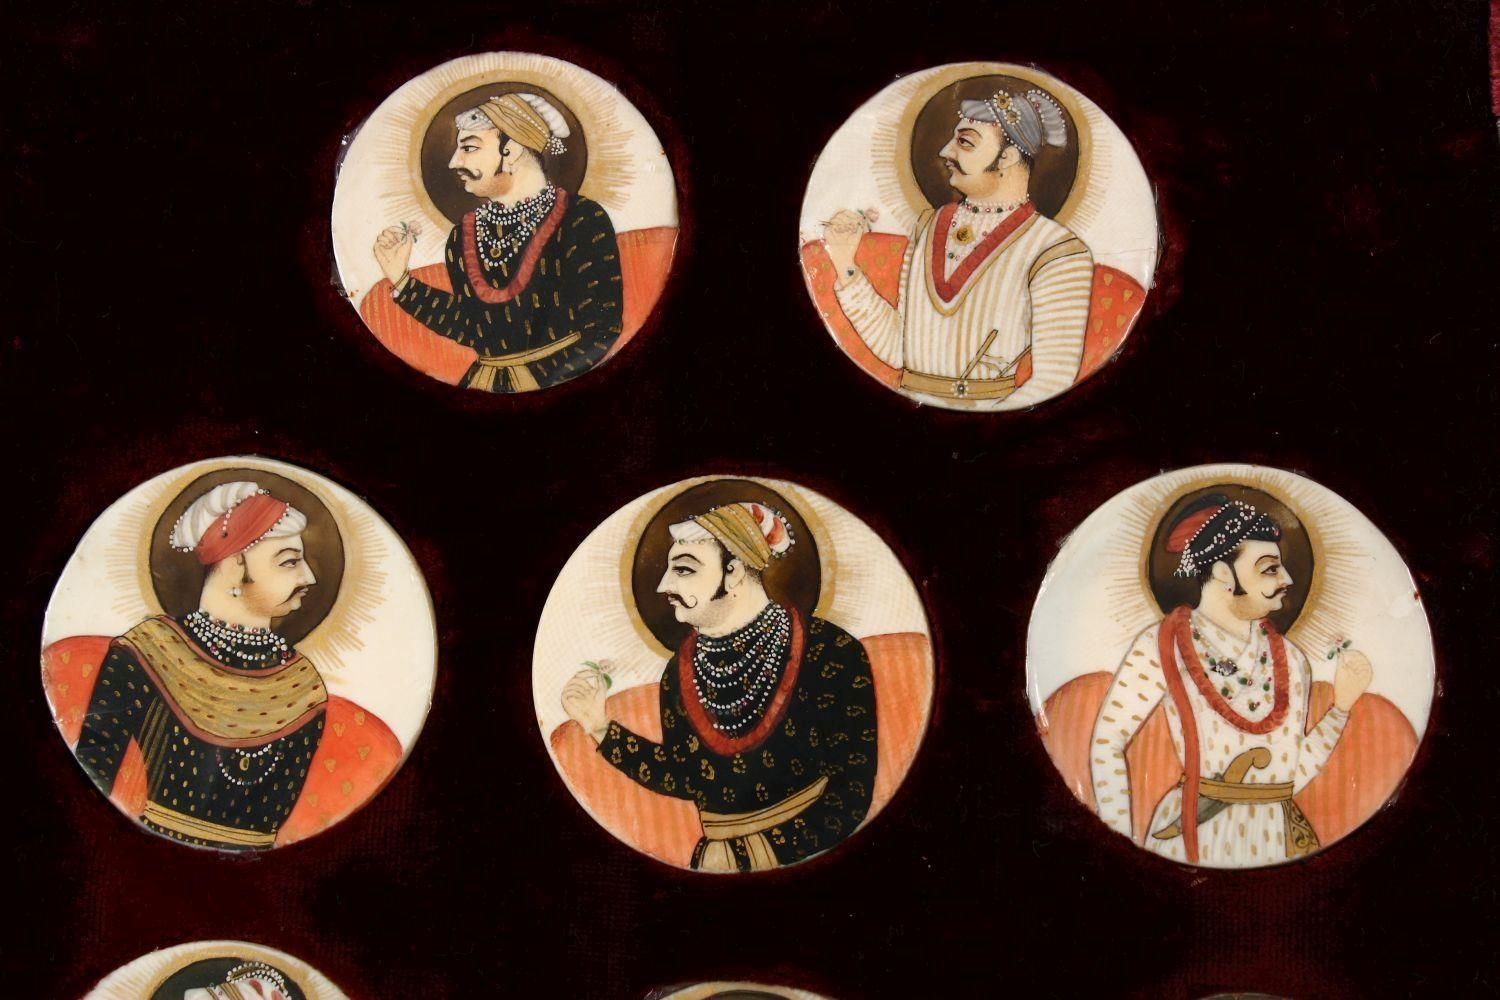 A BOXED SET OF THIRTEEN 18TH/19TH CENTURY PERSIAN CARVED & PAINTED IVORY MINIATURES, each of the - Image 2 of 10